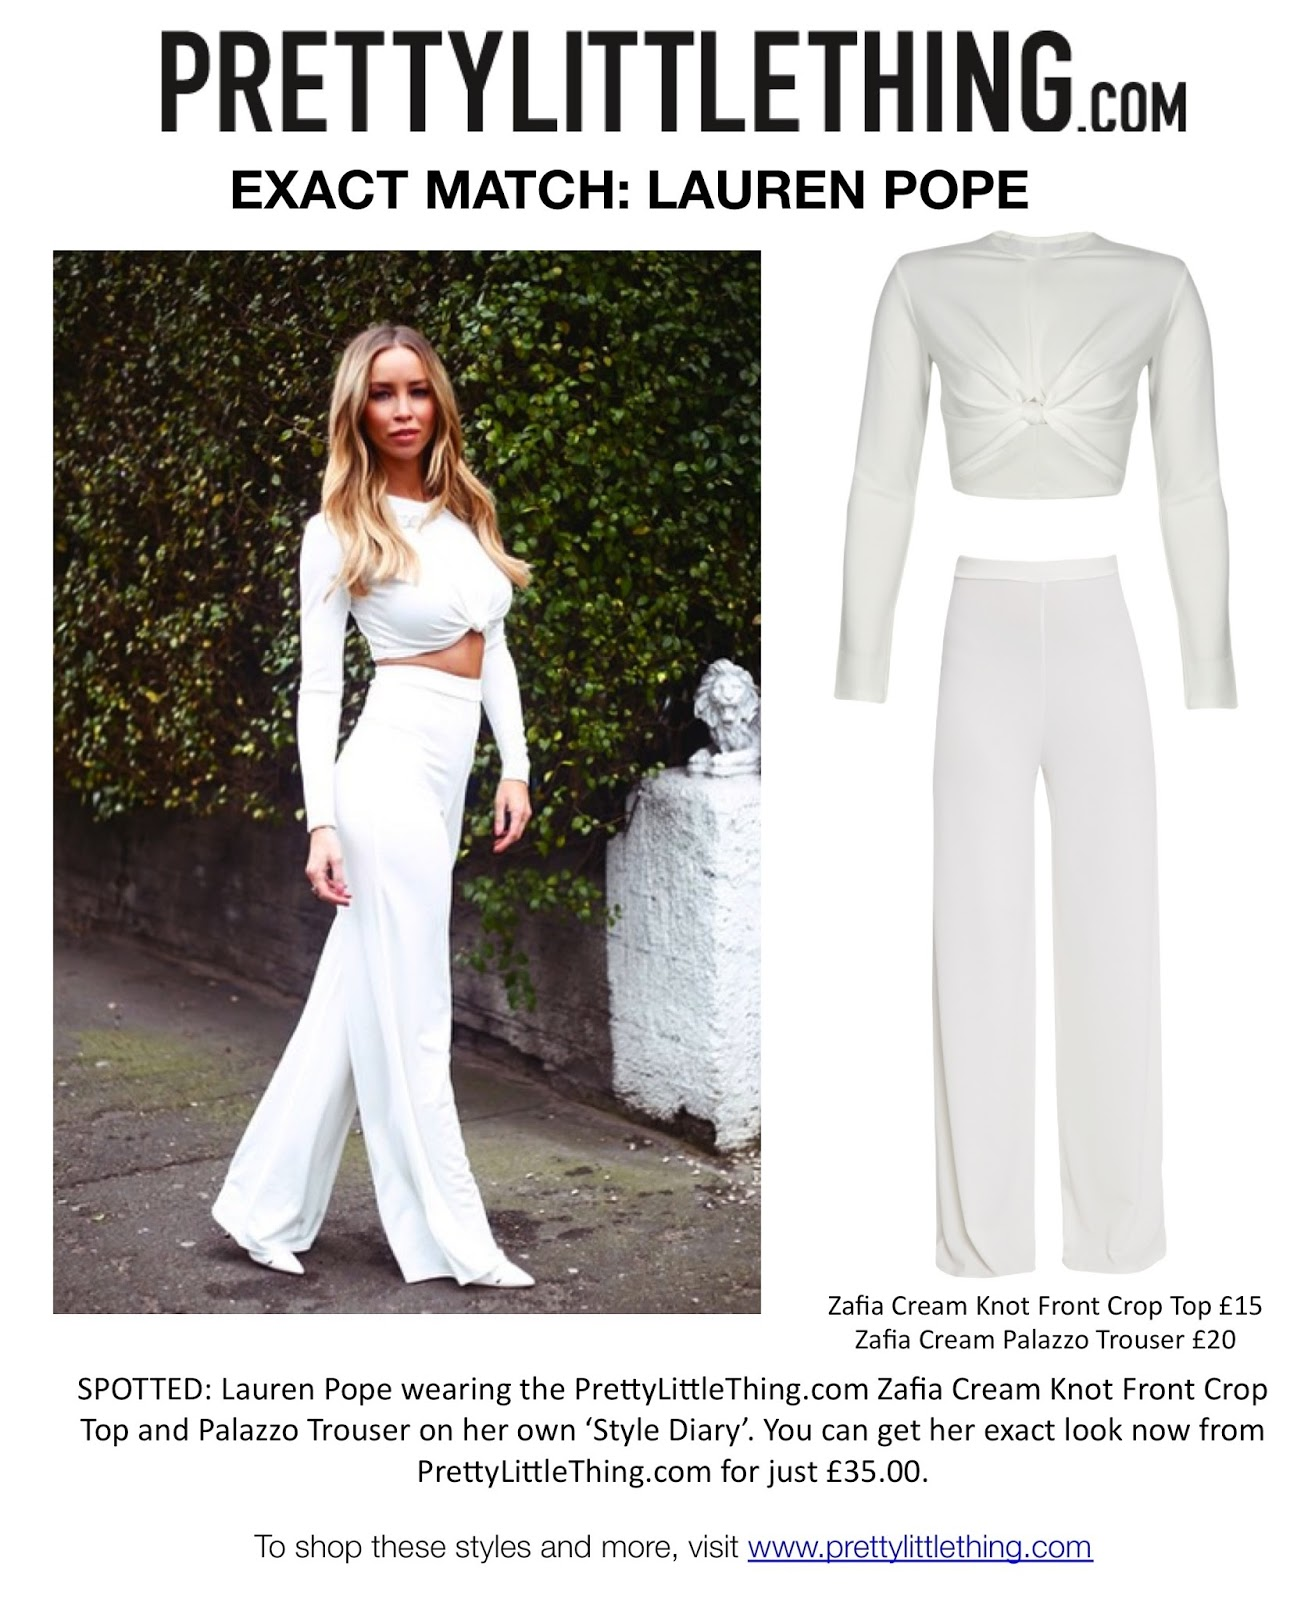 468a868e7a5 frumpy to funky  EXACT MATCH - Lauren Pope wearing Pretty Little Thing